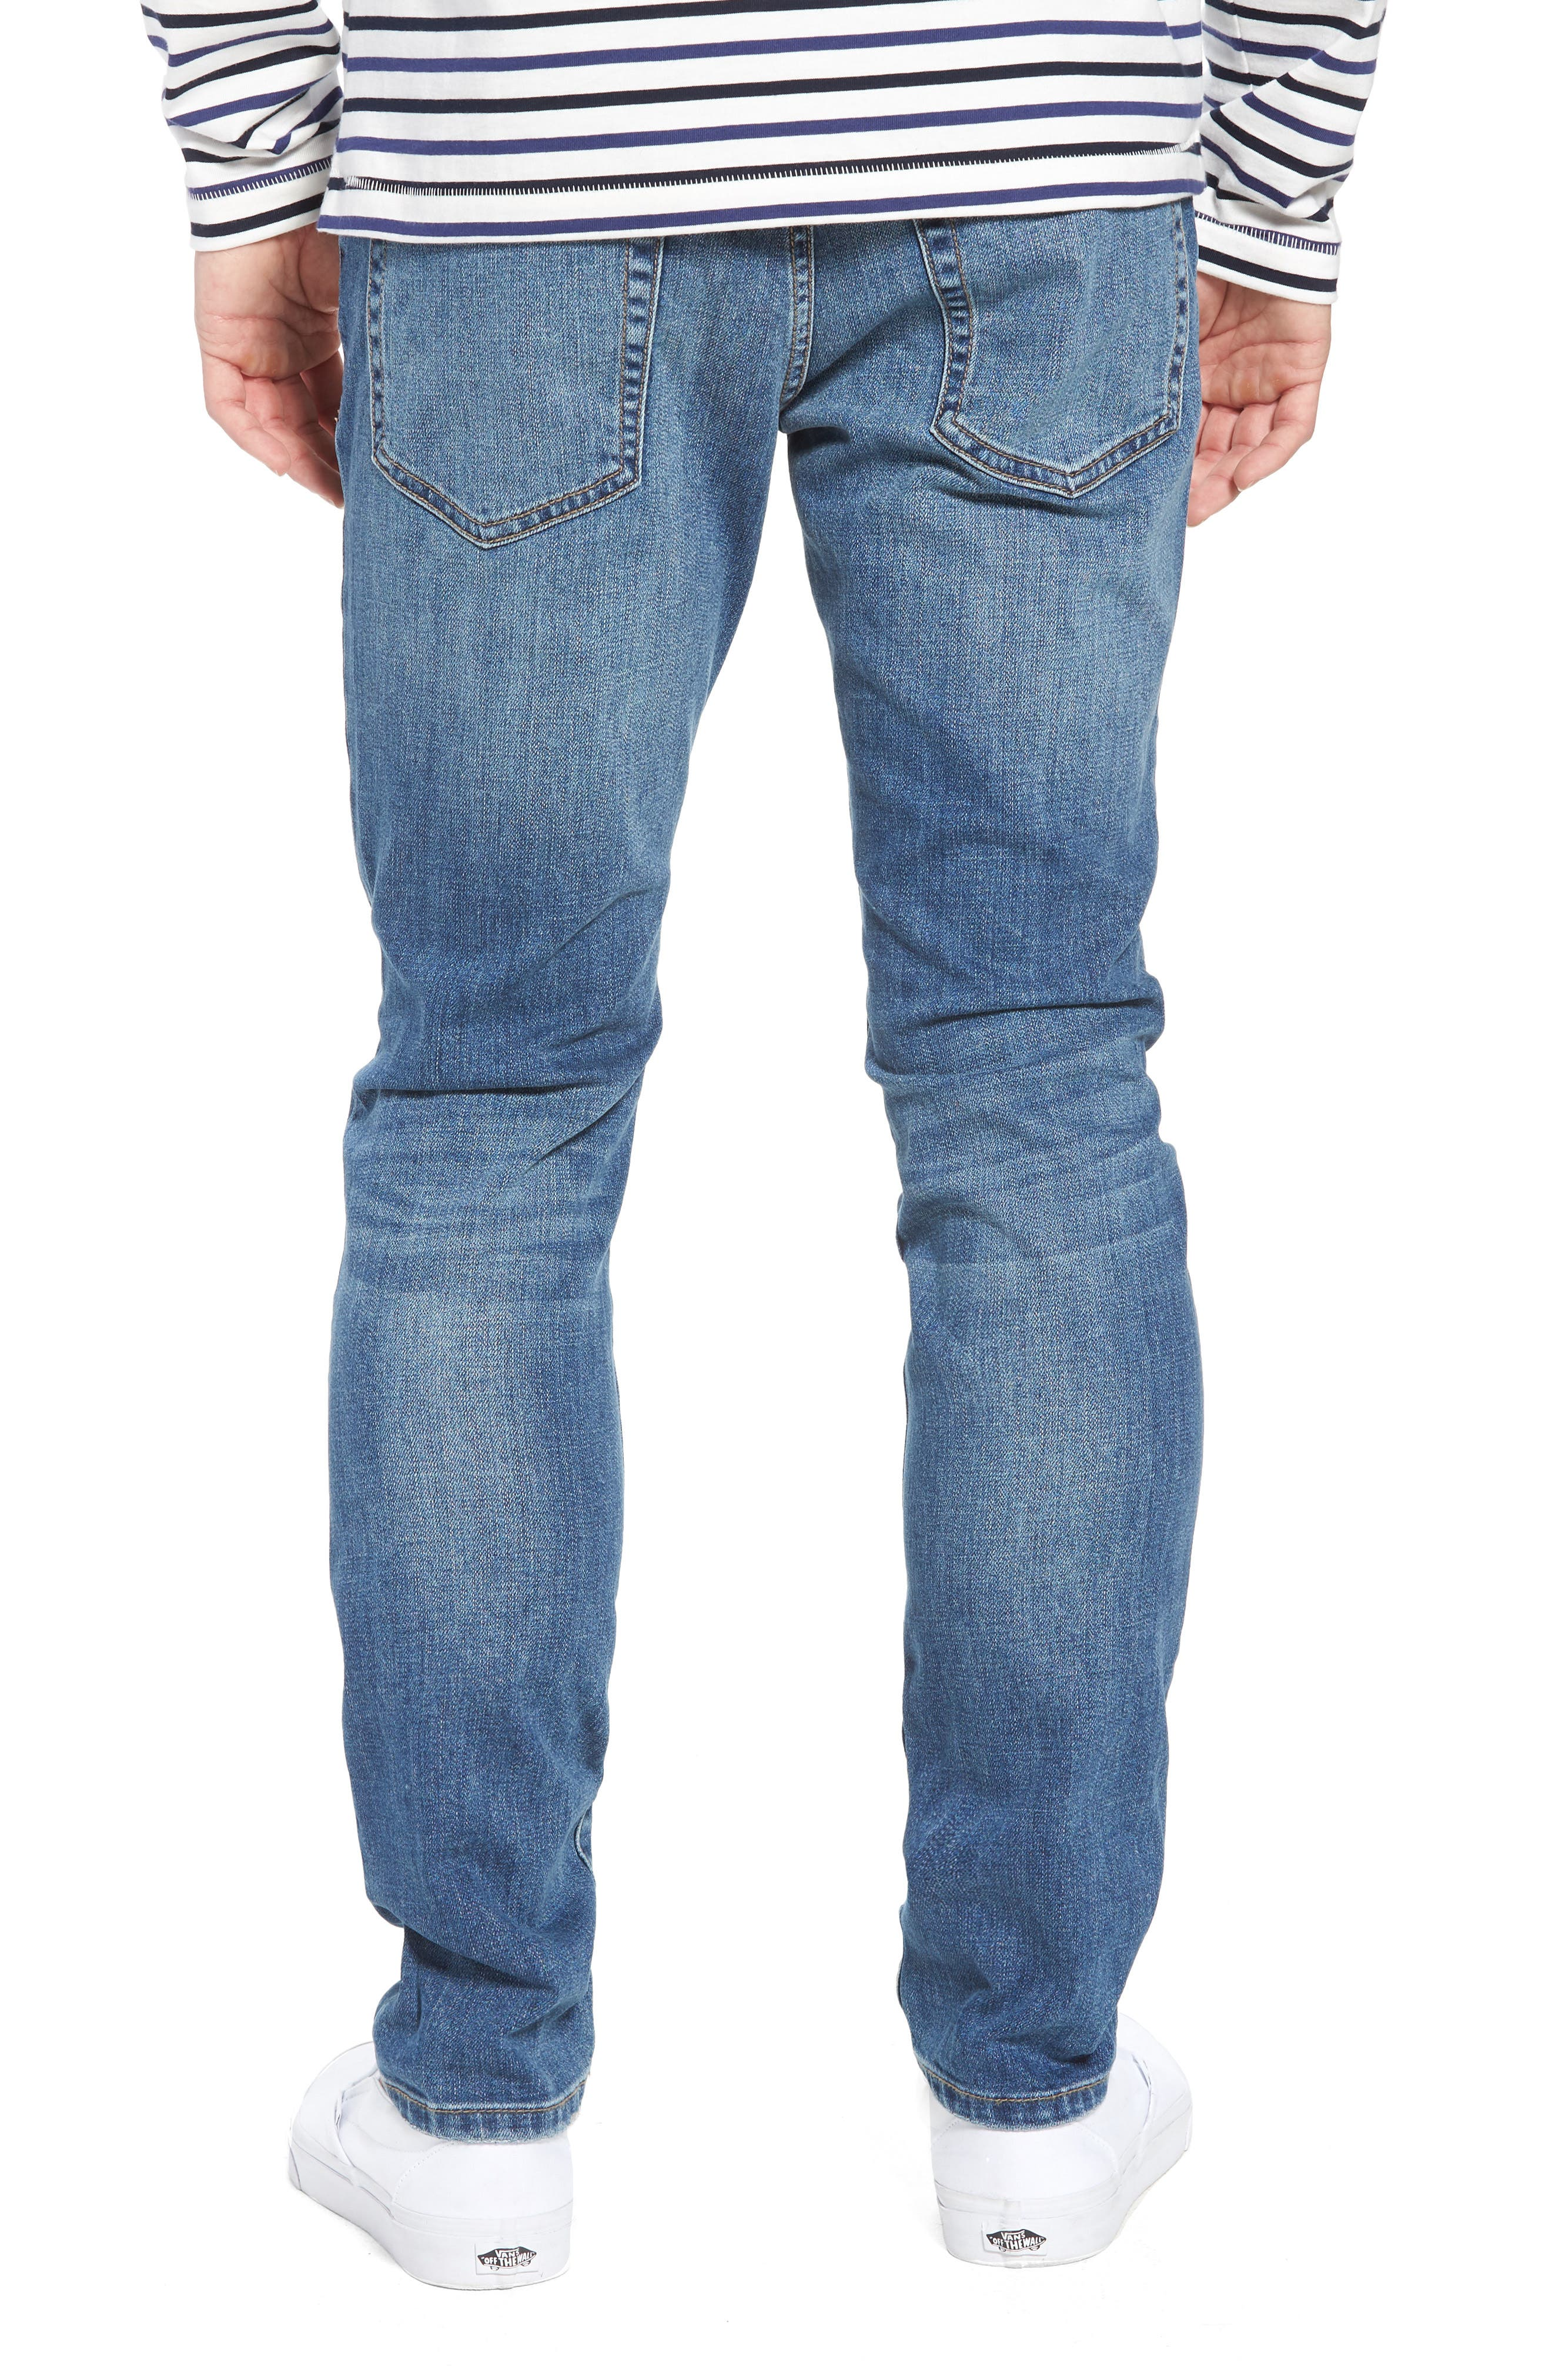 Jeans Co. Bond Skinny Fit Jeans,                             Alternate thumbnail 2, color,                             401